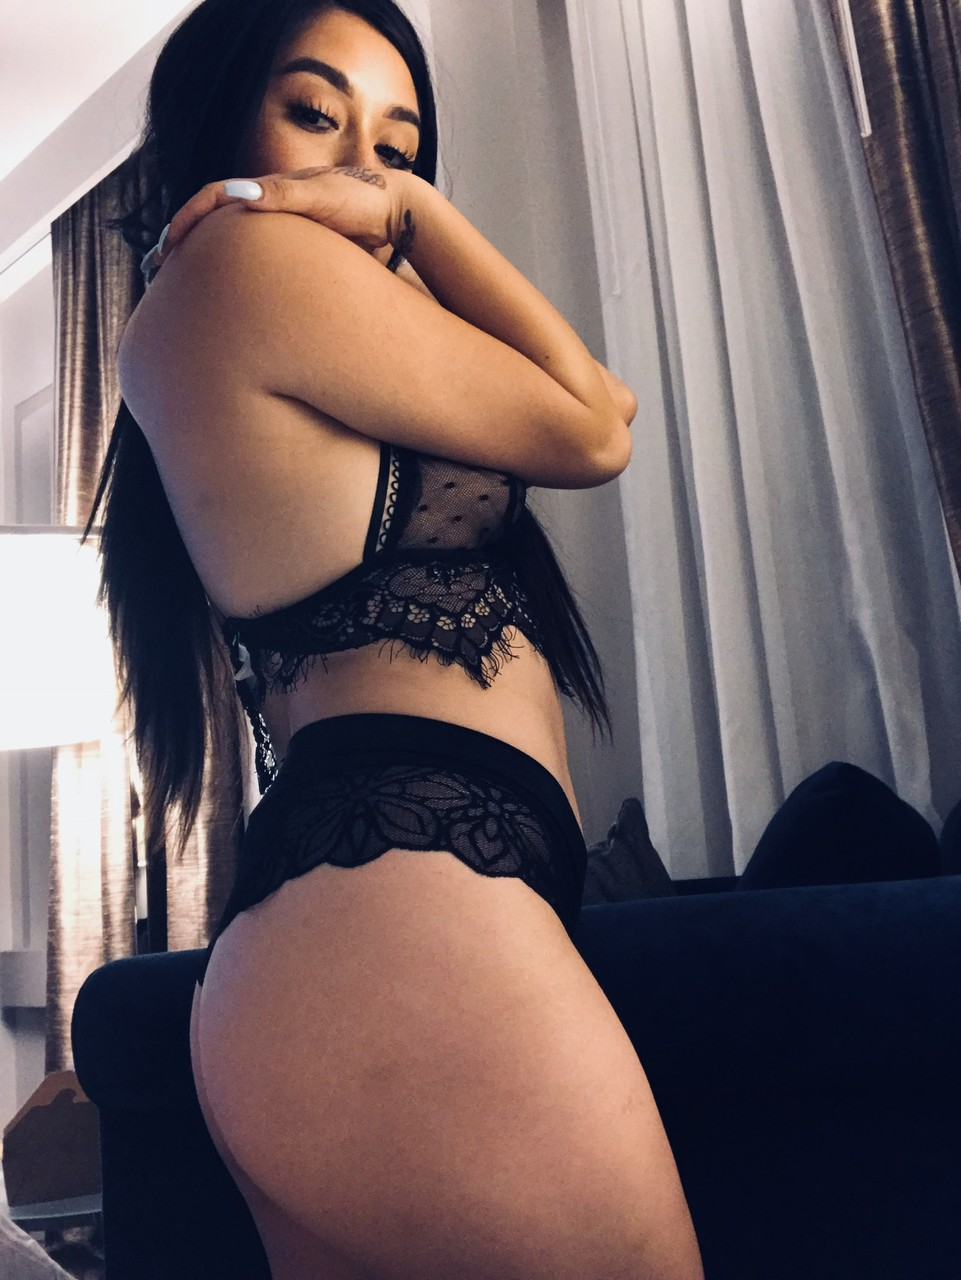 Independence Bay Area Escort